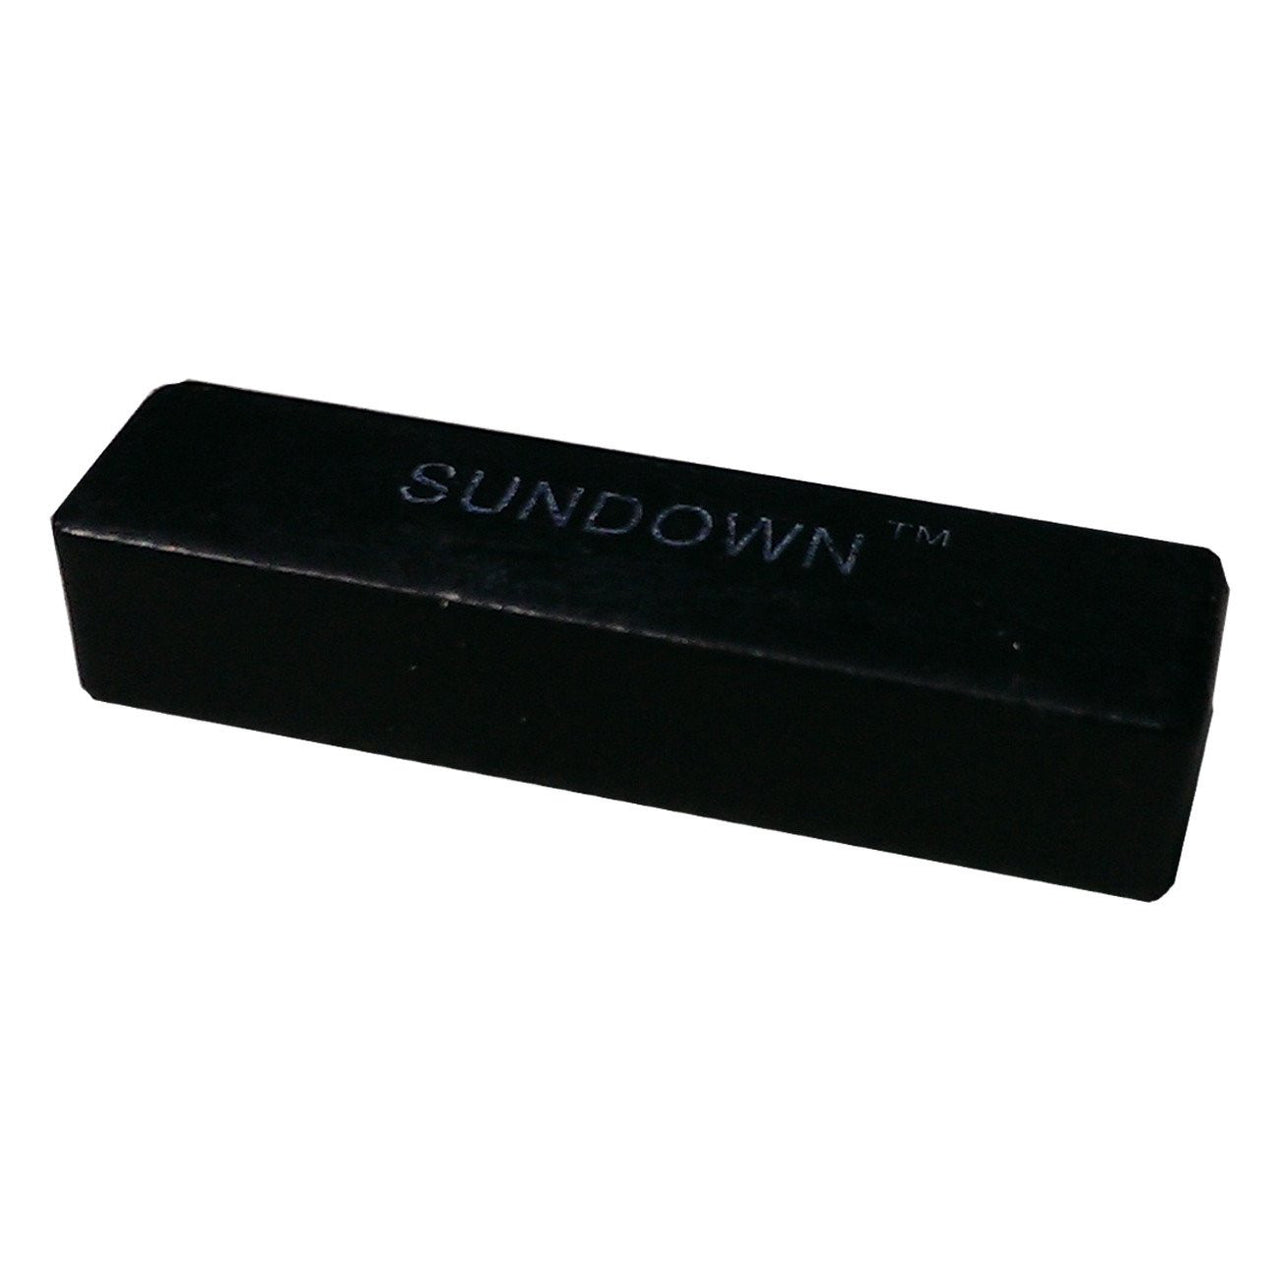 Sundown black-max cow magnet